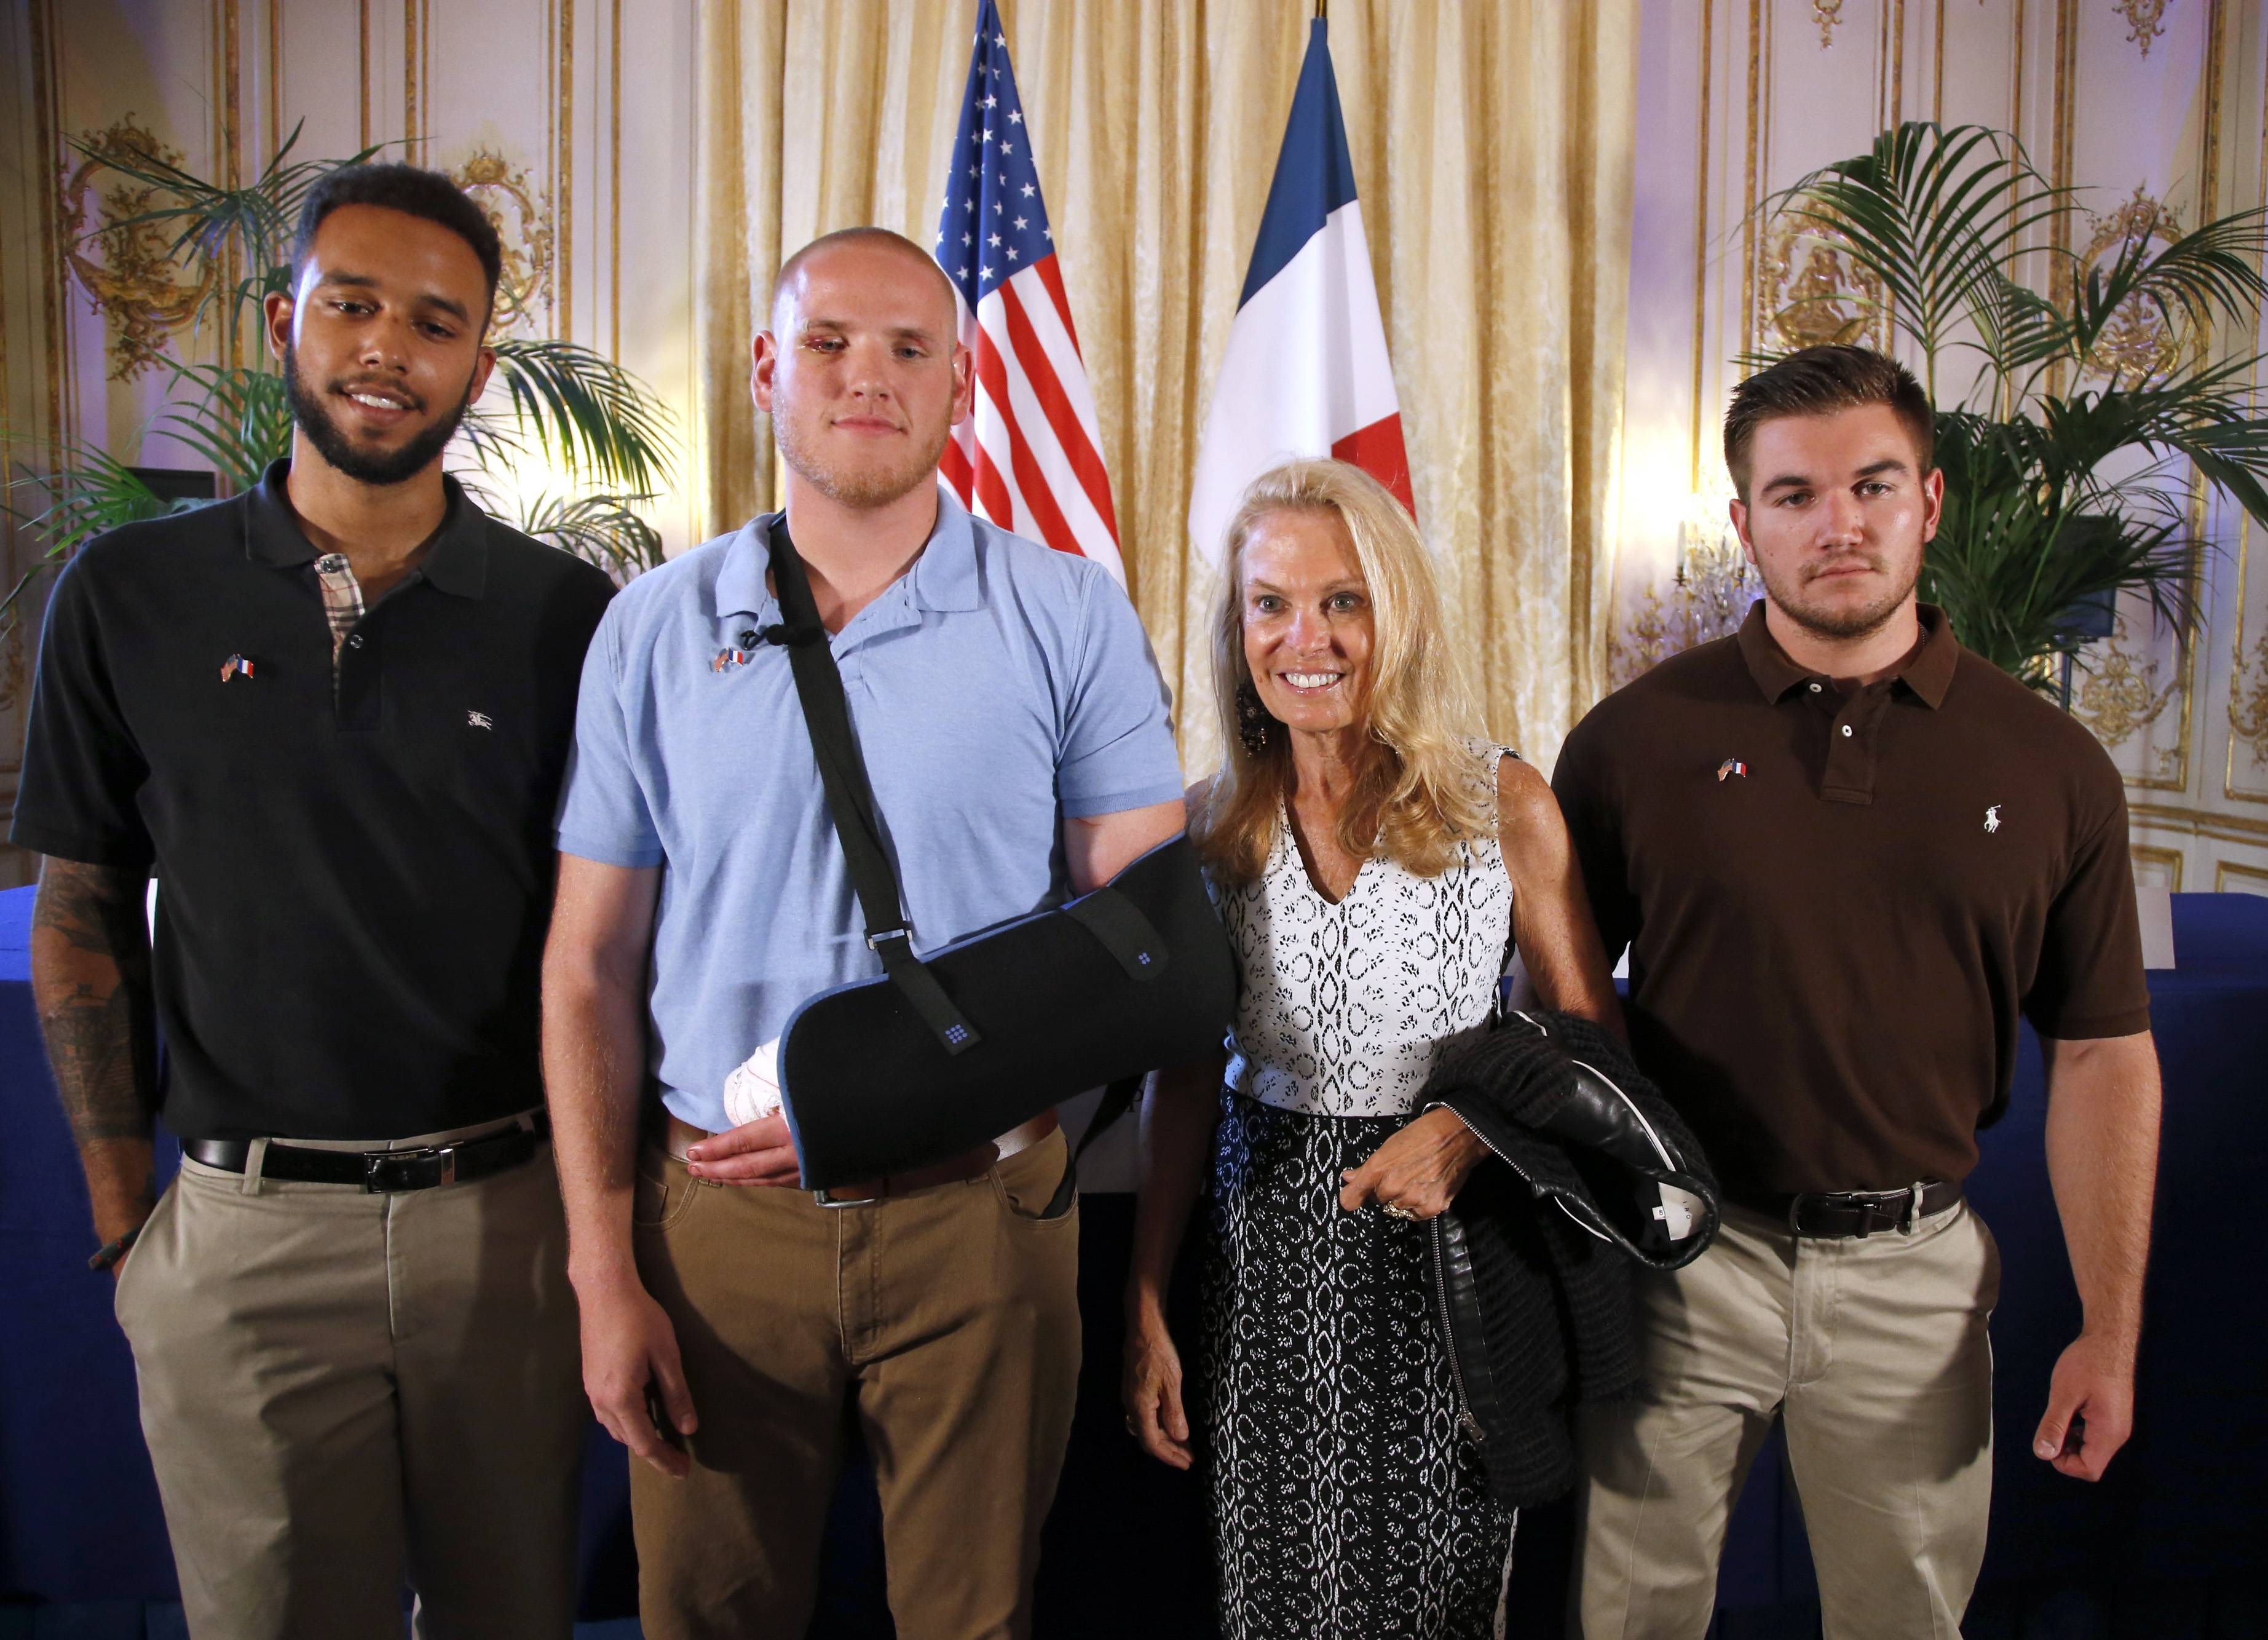 Anthony Sadler, a senior at Sacramento University in California, left, U.S. National Guardsman from Roseburg, Oregon, Alek Skarlatos, right, and U.S. Airman Spencer Stone, second from left, pose for photographers with Jane D. Hartley, U.S. Ambassador to France, before a news conference held at the U.S. Ambassador's residence in Paris, France, Sunday, Aug. 23, 2015. Sadler, Skarlatos and Stone helped foil a potentially deadly attack when they subdued a man armed with an assault rifle and other weapons on board a high-speed train bound for Paris two days ago. The man was known to intelligence services in three countries and had ties to radical Islam, authorities said Sunday. (AP Photo/Francois Mori)